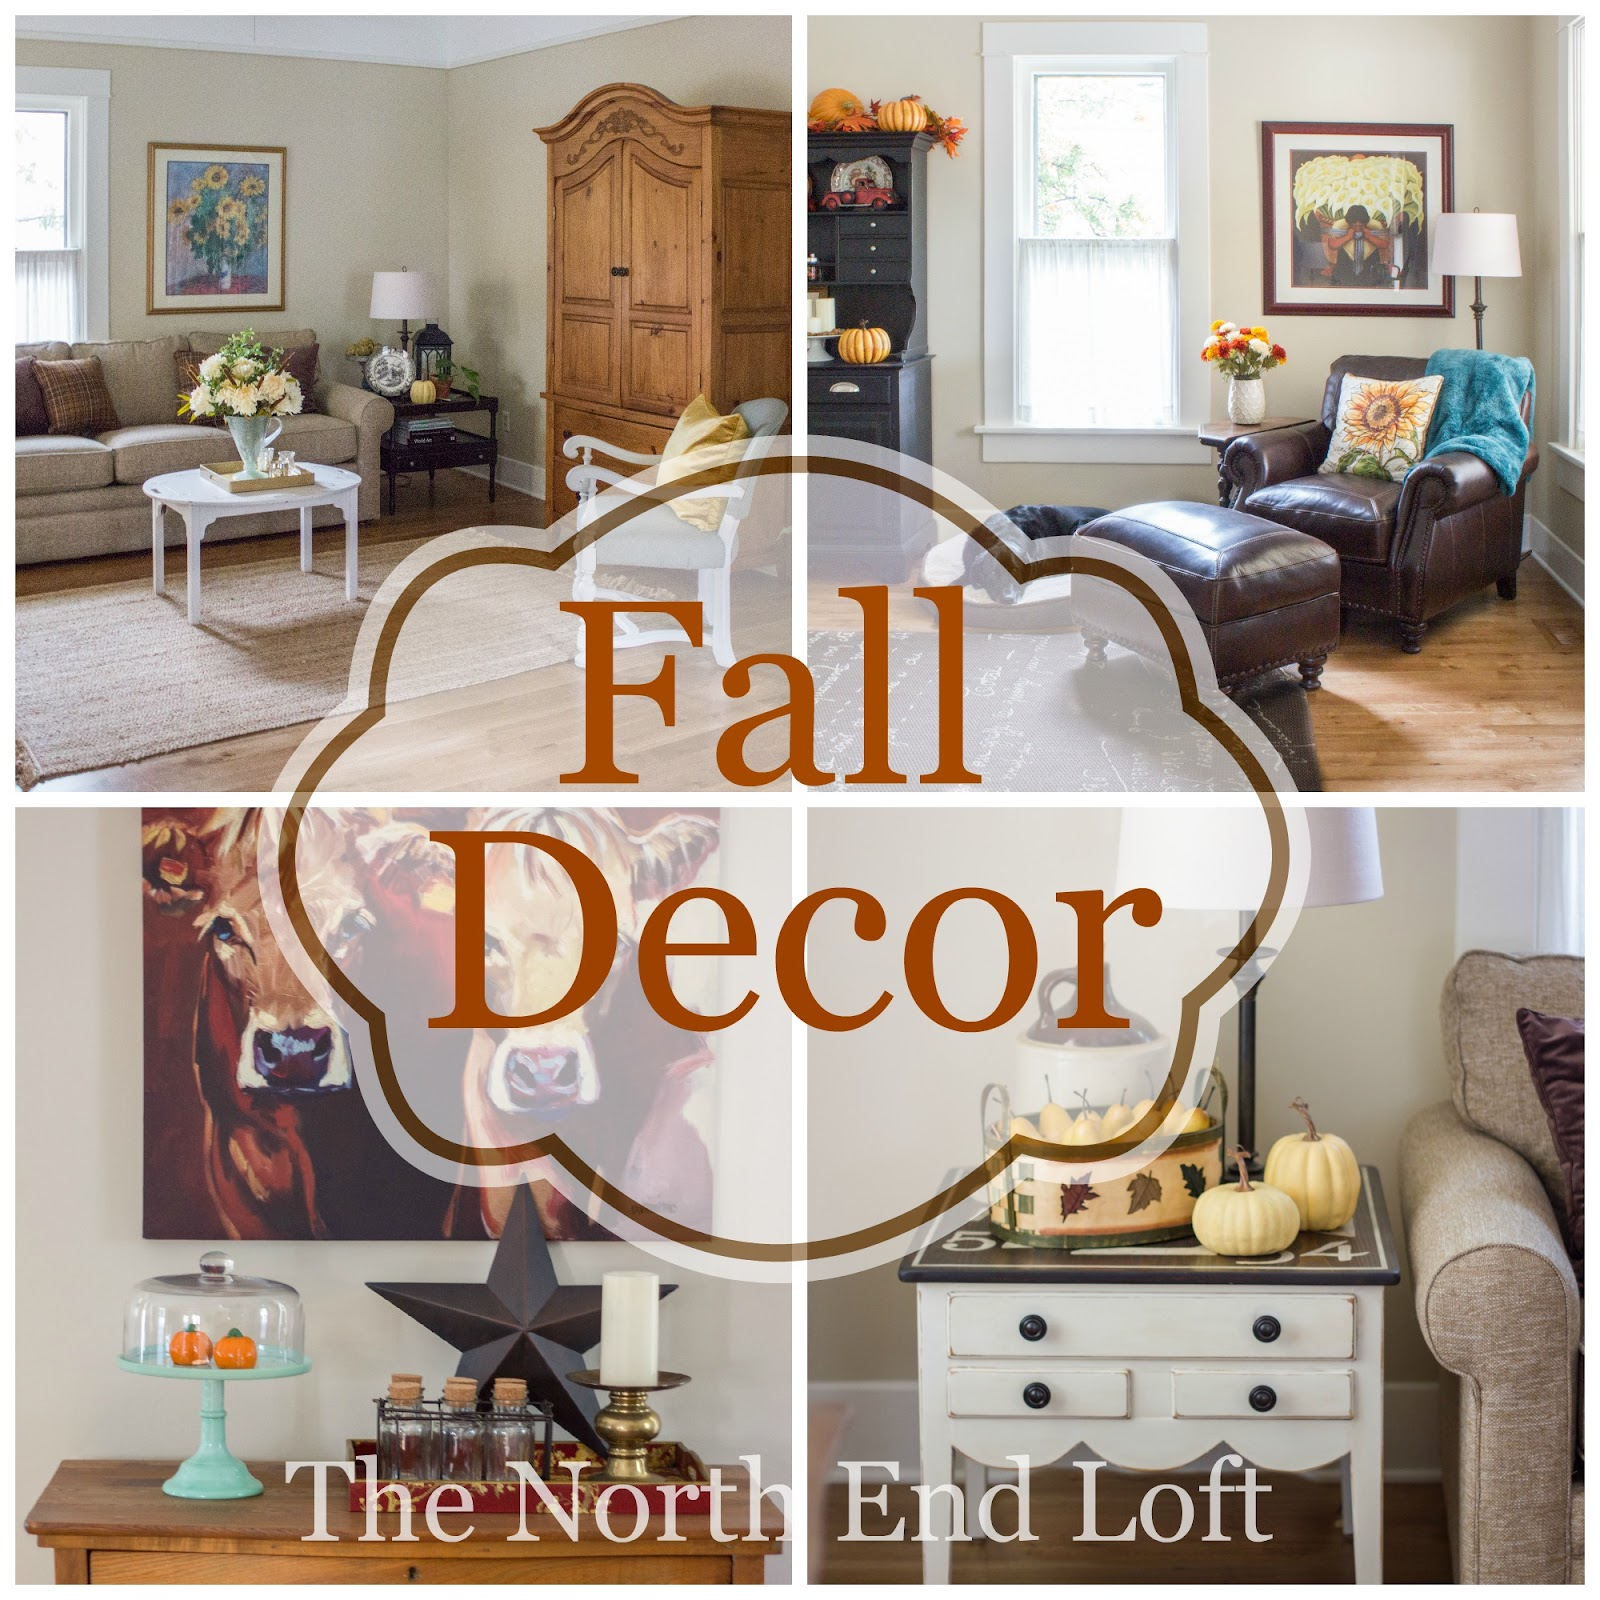 Fall Living Room 2015The North End Loft  Fall Living Room 2015. Fall Living Room Decor. Home Design Ideas